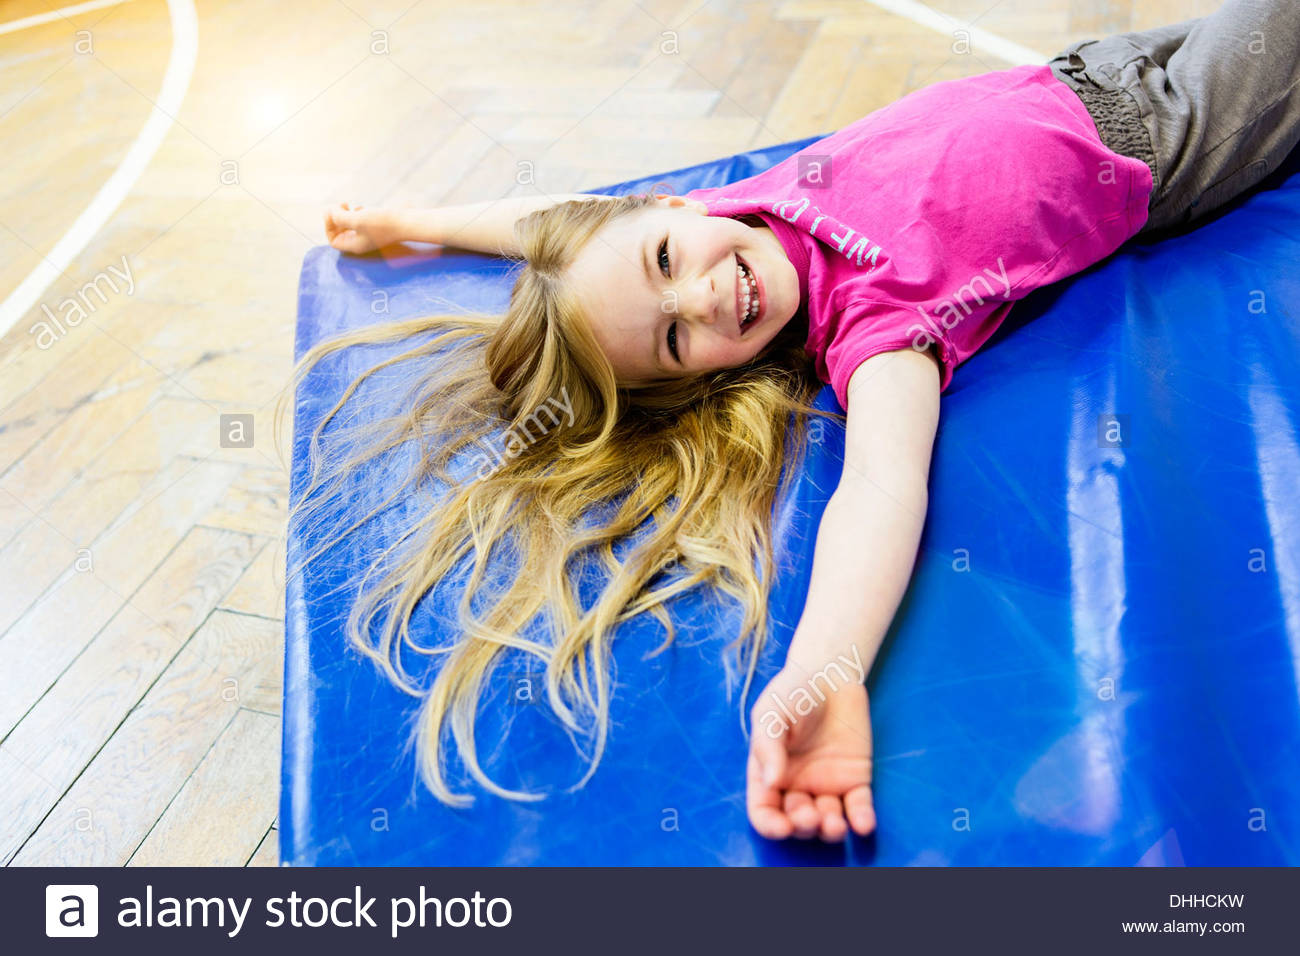 Girl lying on blue exercise mat, smiling - Stock Image